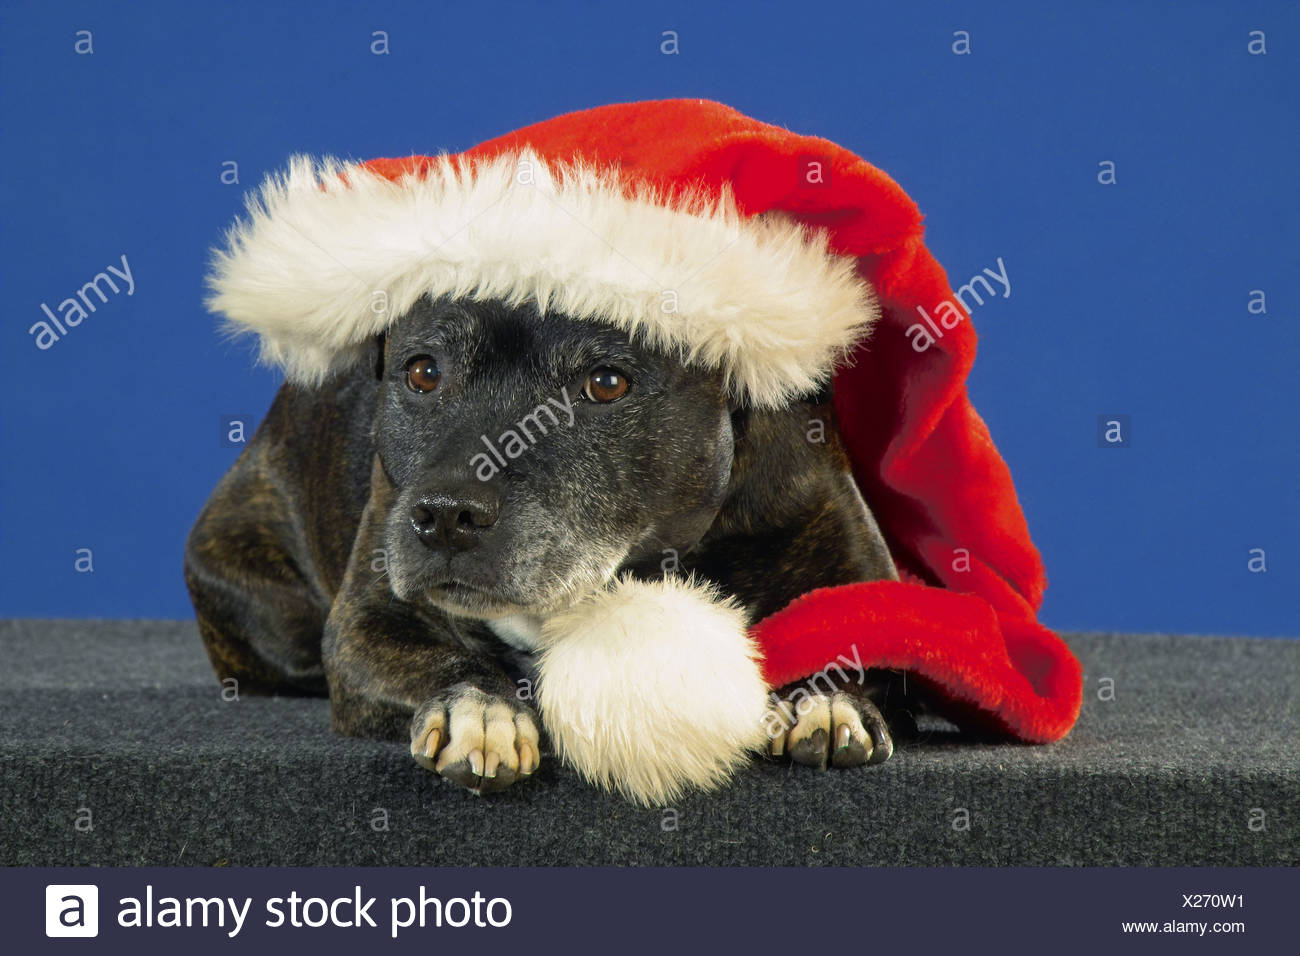 Christmas: Staffordshire Bullterrier with Santa Claus cap - Stock Image